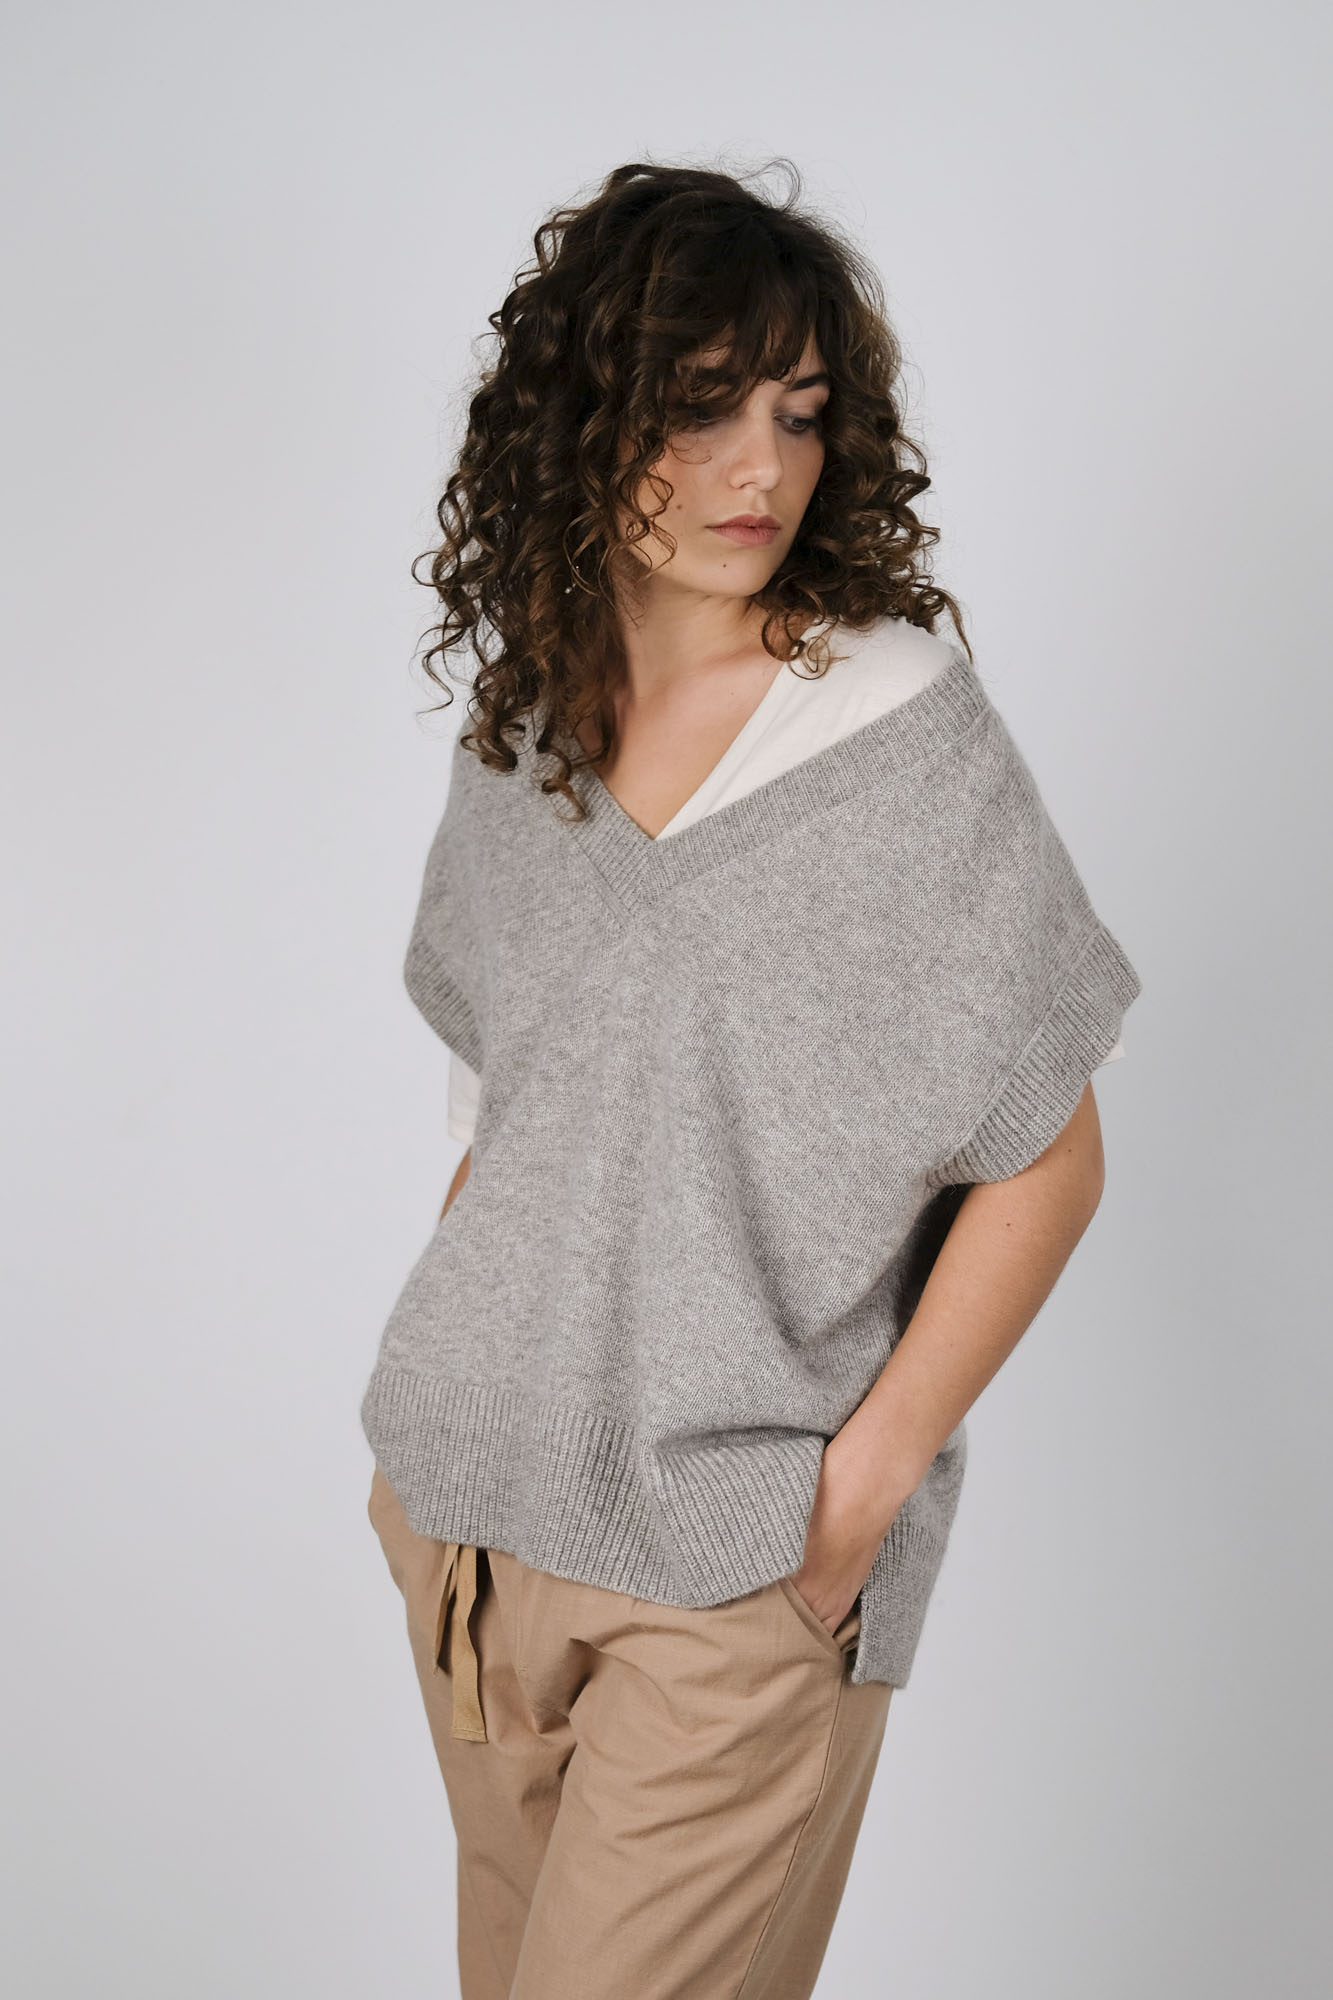 aiayu foxglove light grey